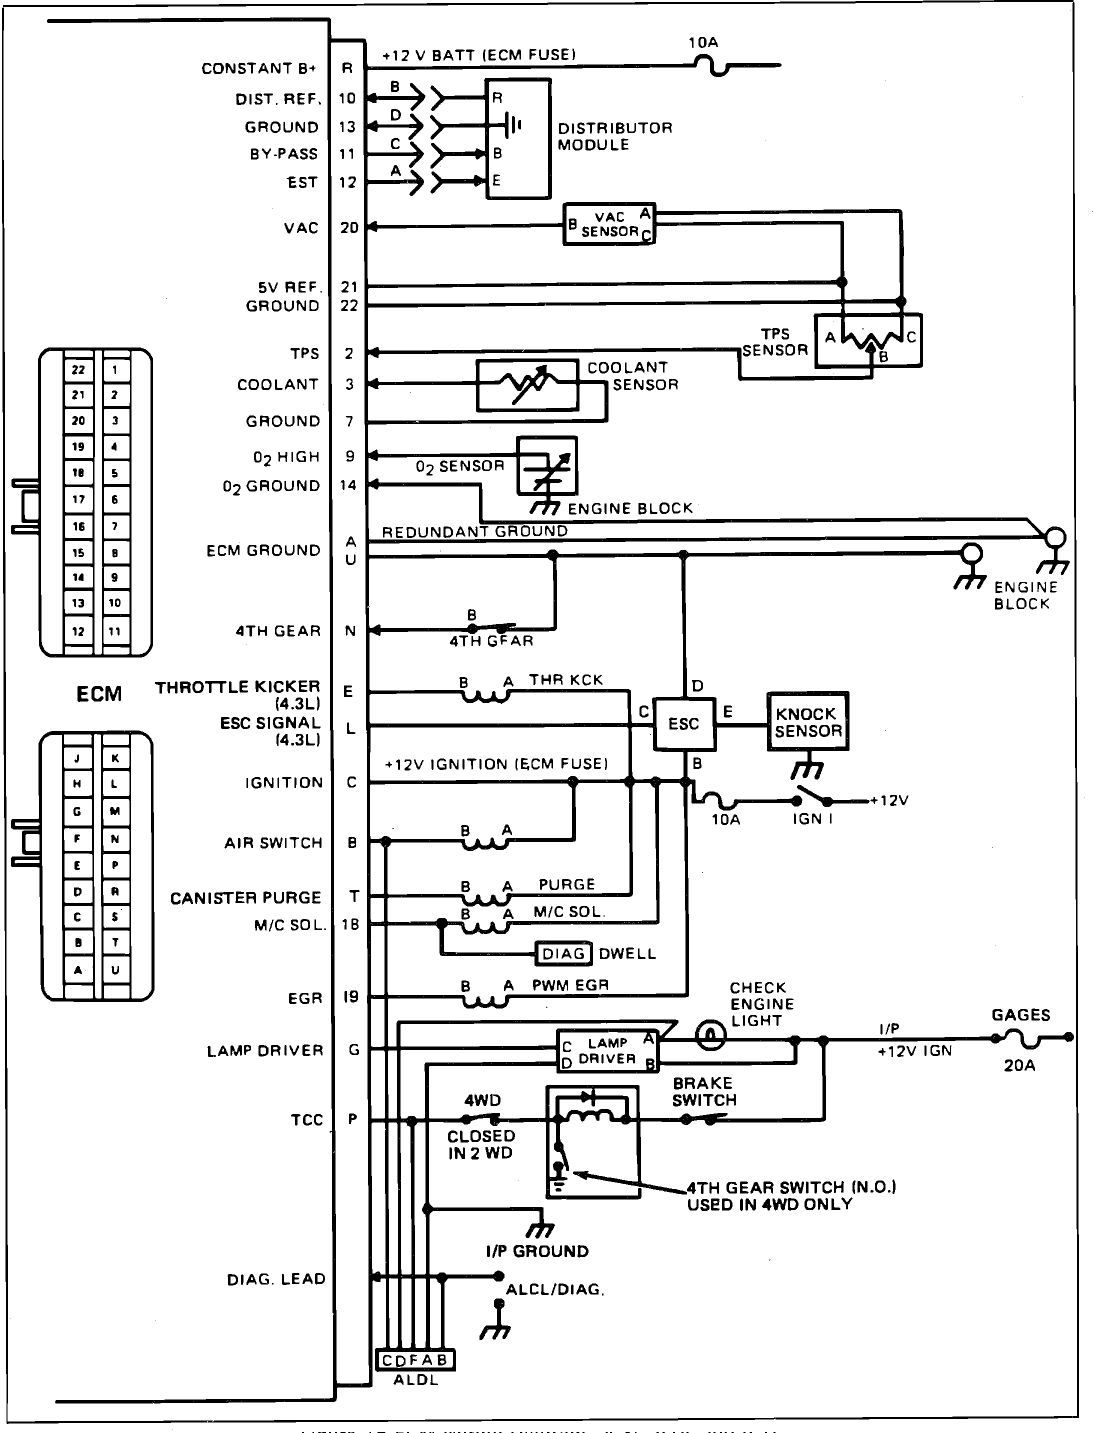 1985 Corvette Wiring Schematic